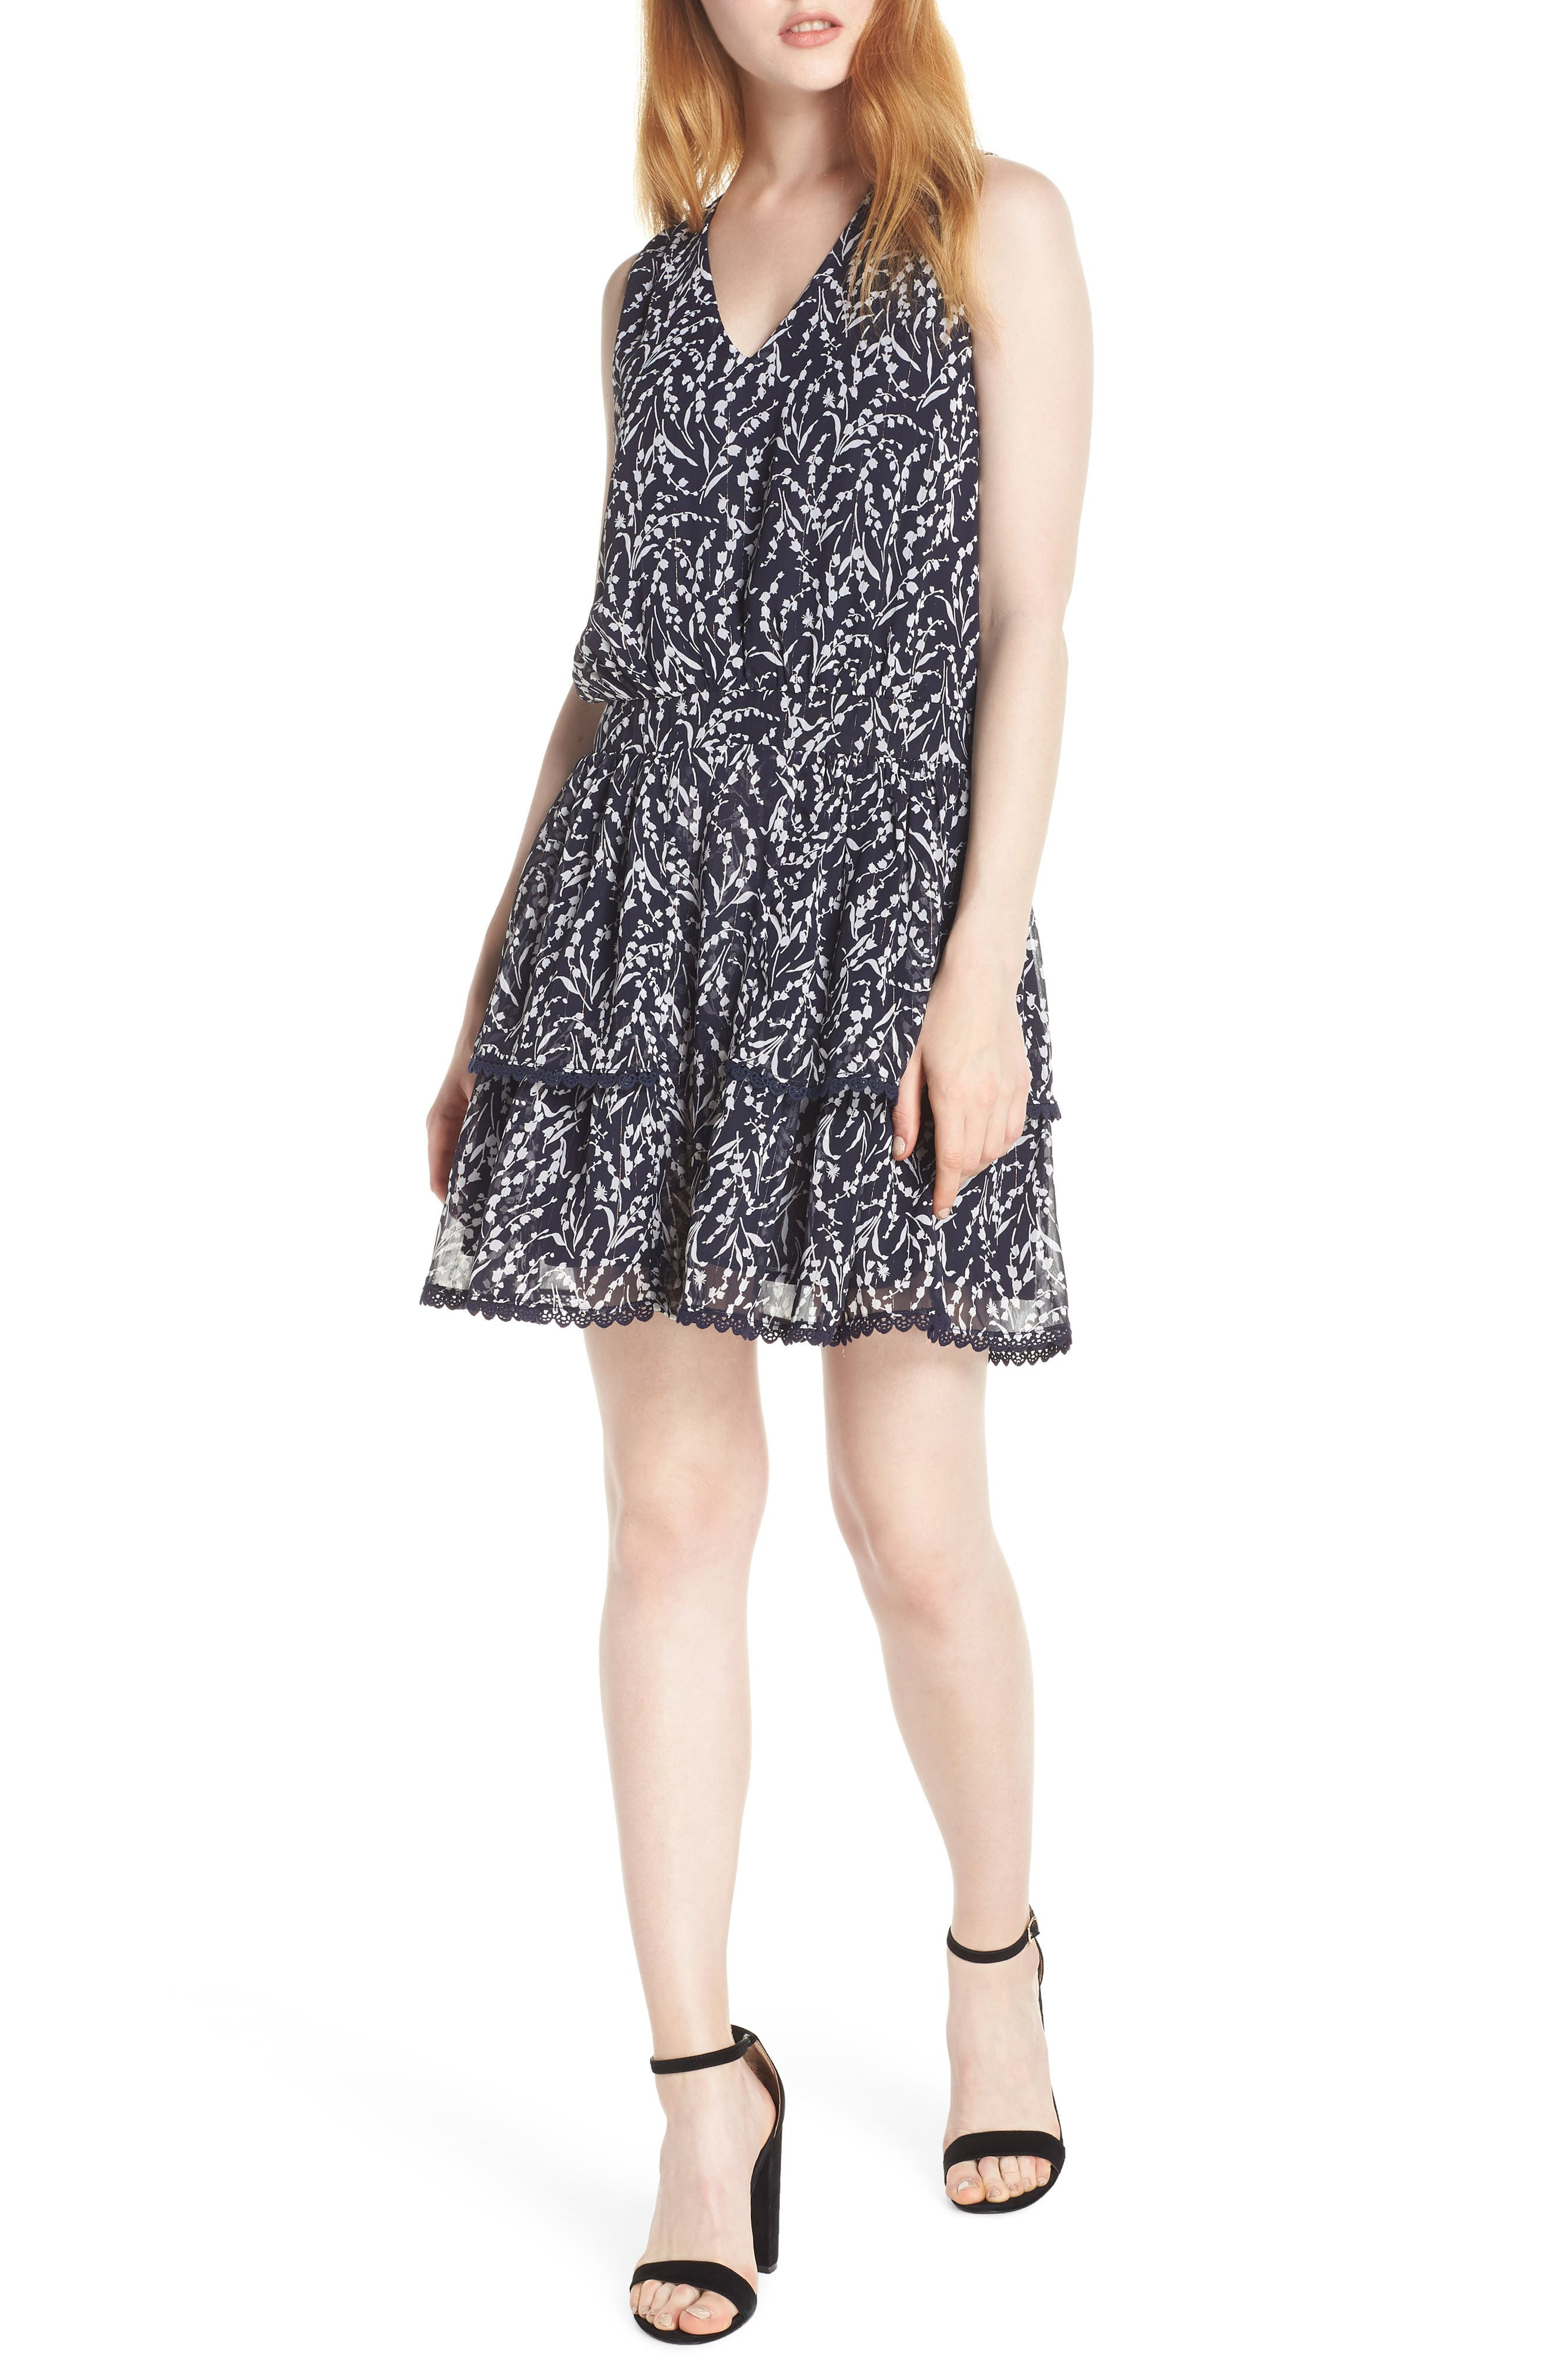 19 COOPER, Tiered Floral Sleeveless Dress, Main thumbnail 1, color, NAVY/ WHITE